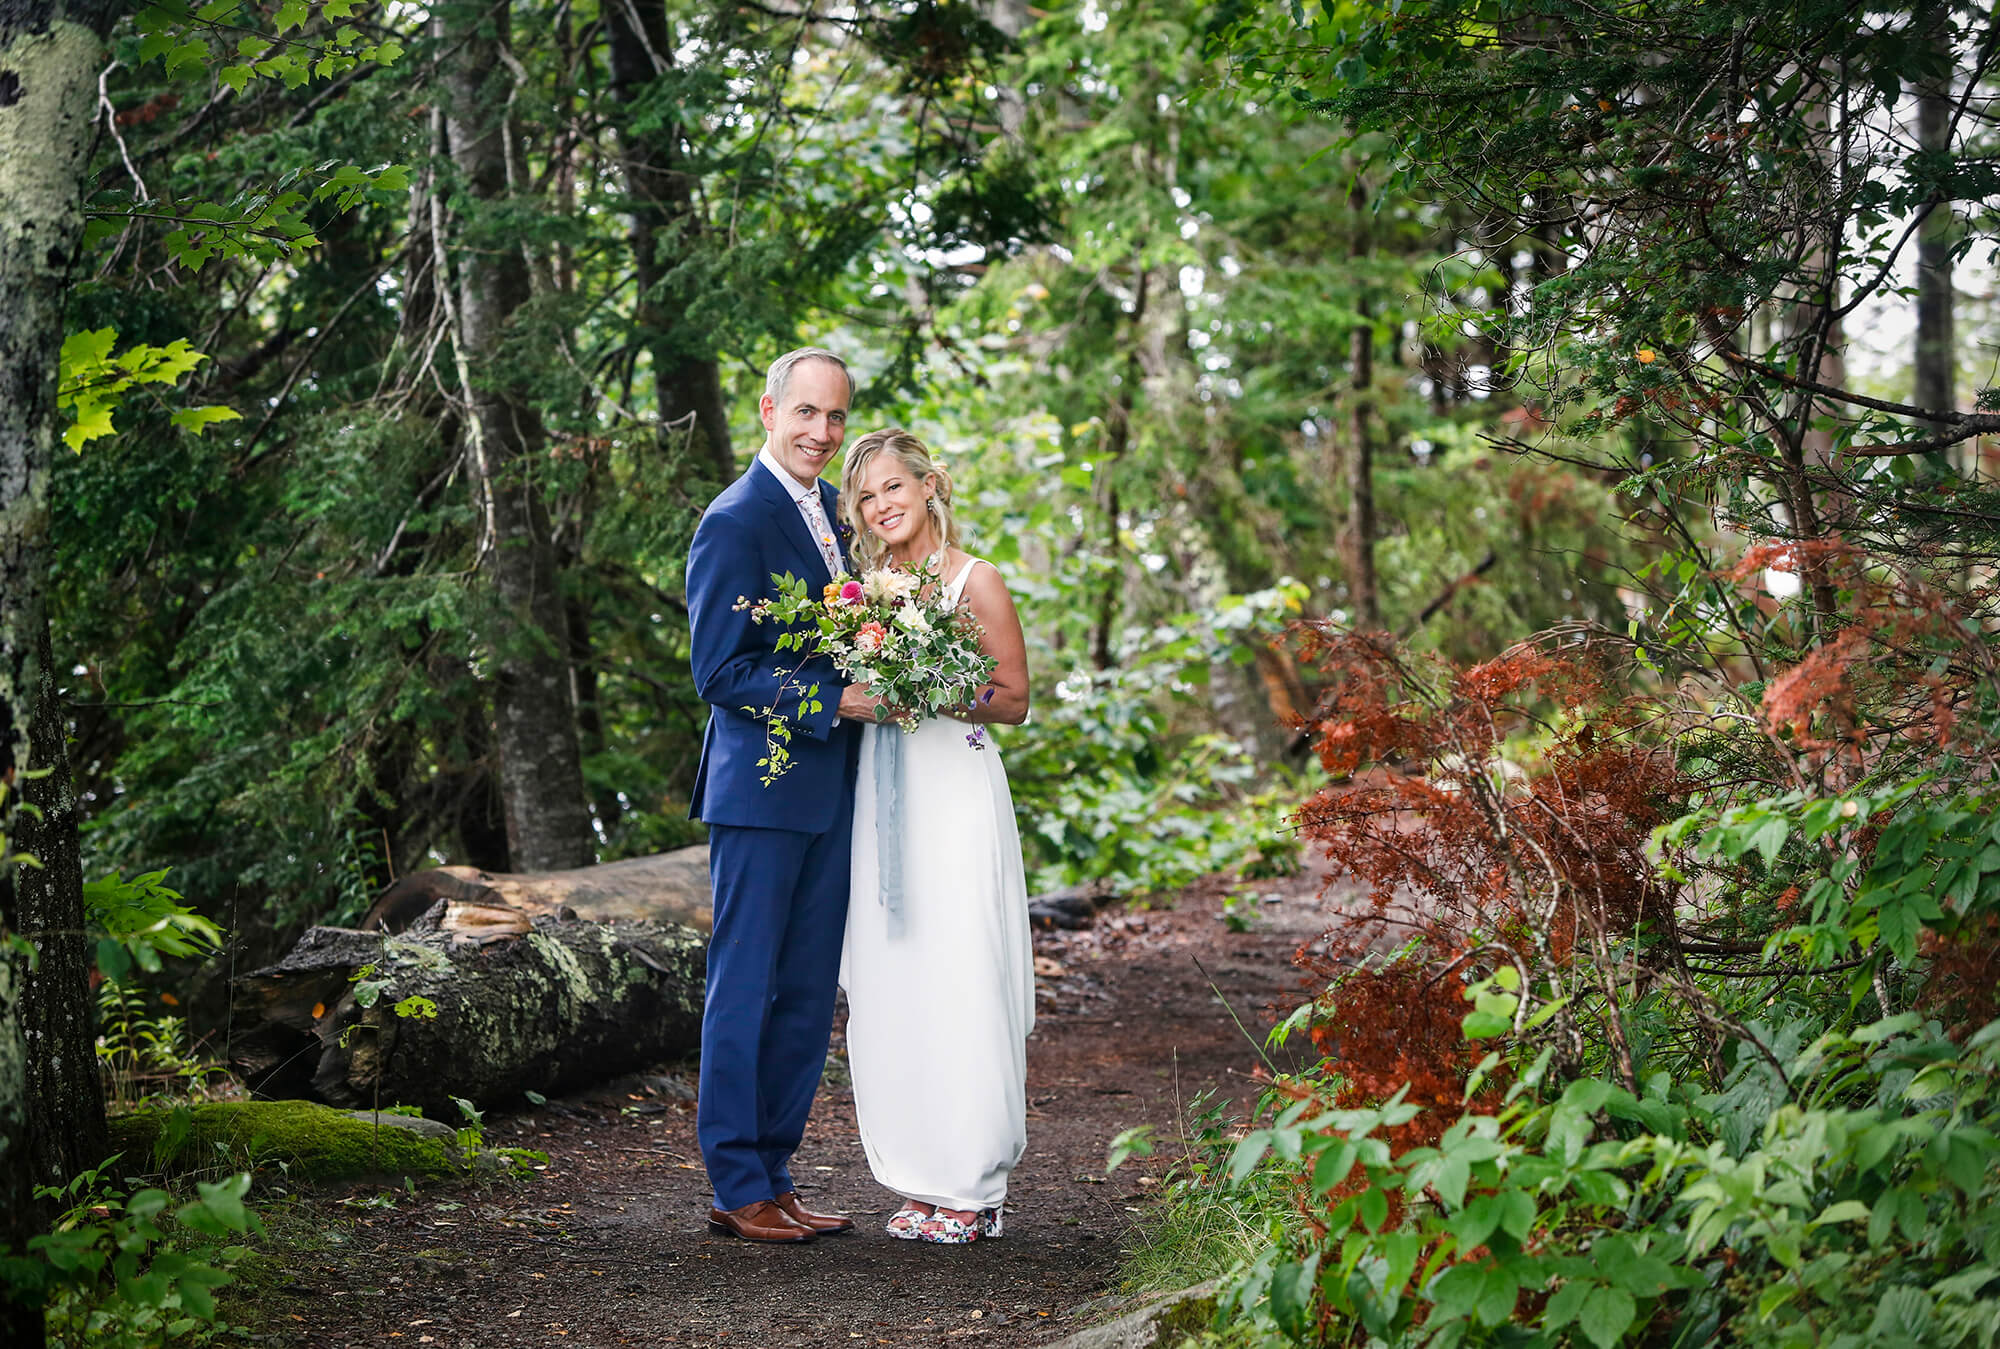 Wedding photography of a couple on a trail in the woods